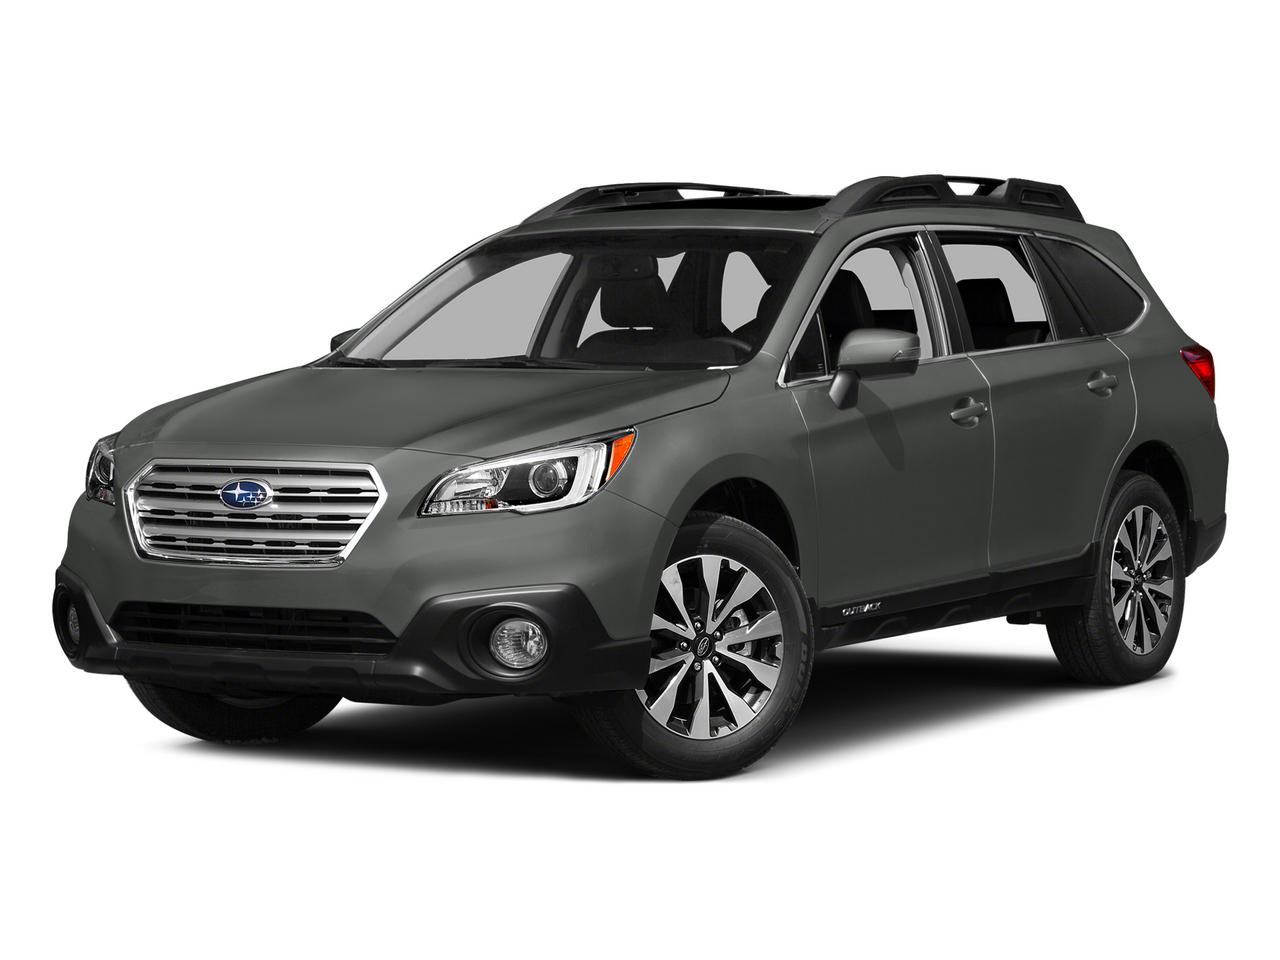 2015 Subaru Outback Vehicle Photo in Rockford, IL 61107